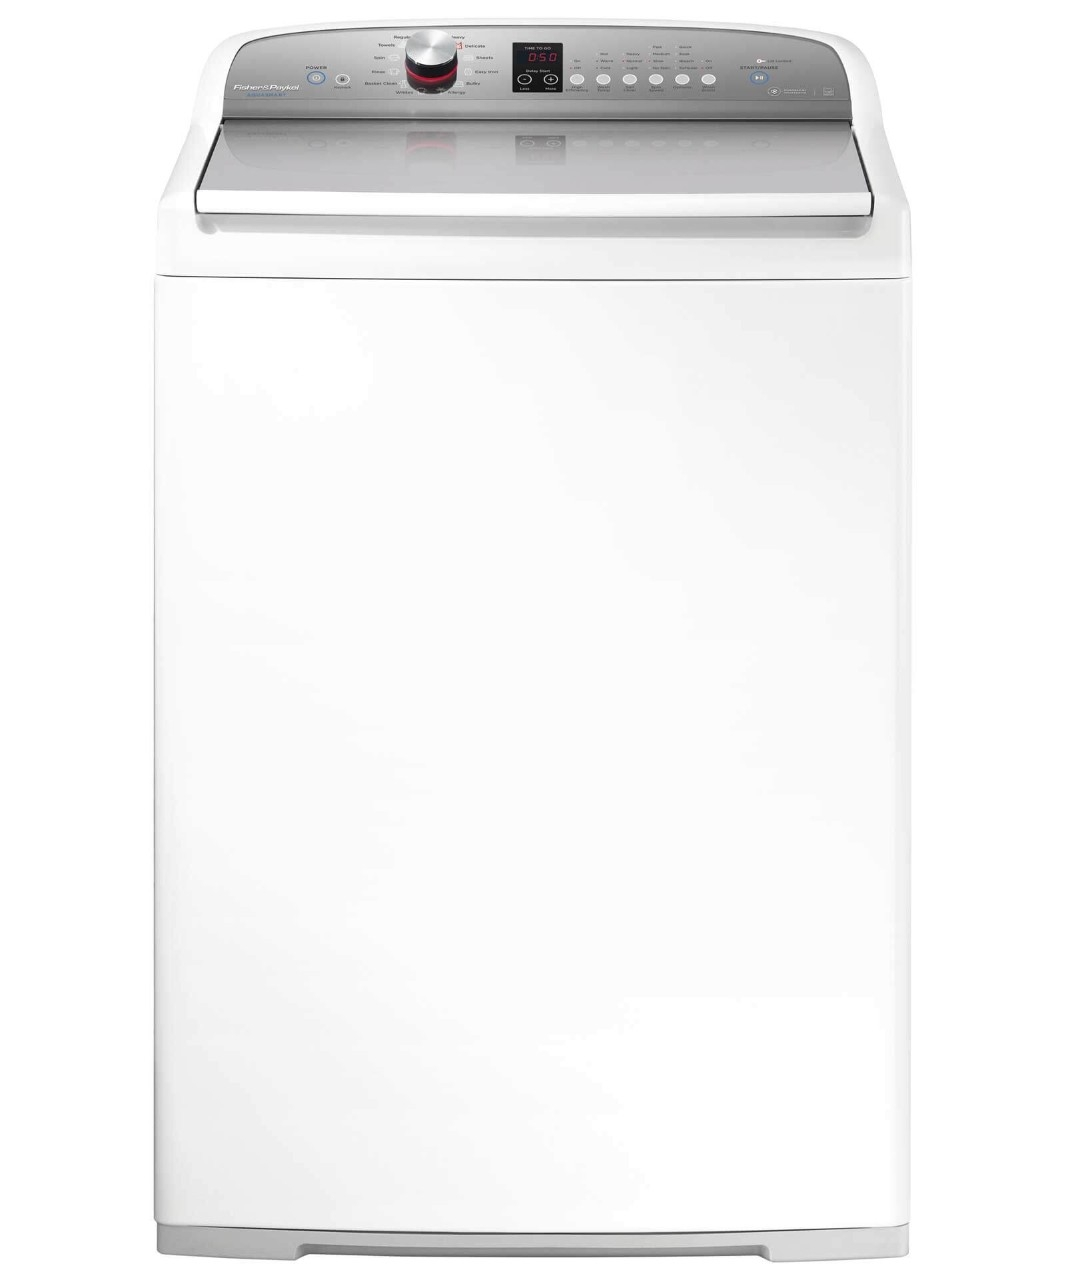 Top Loader Washing Machine, 4 cu ft AquaSmart™